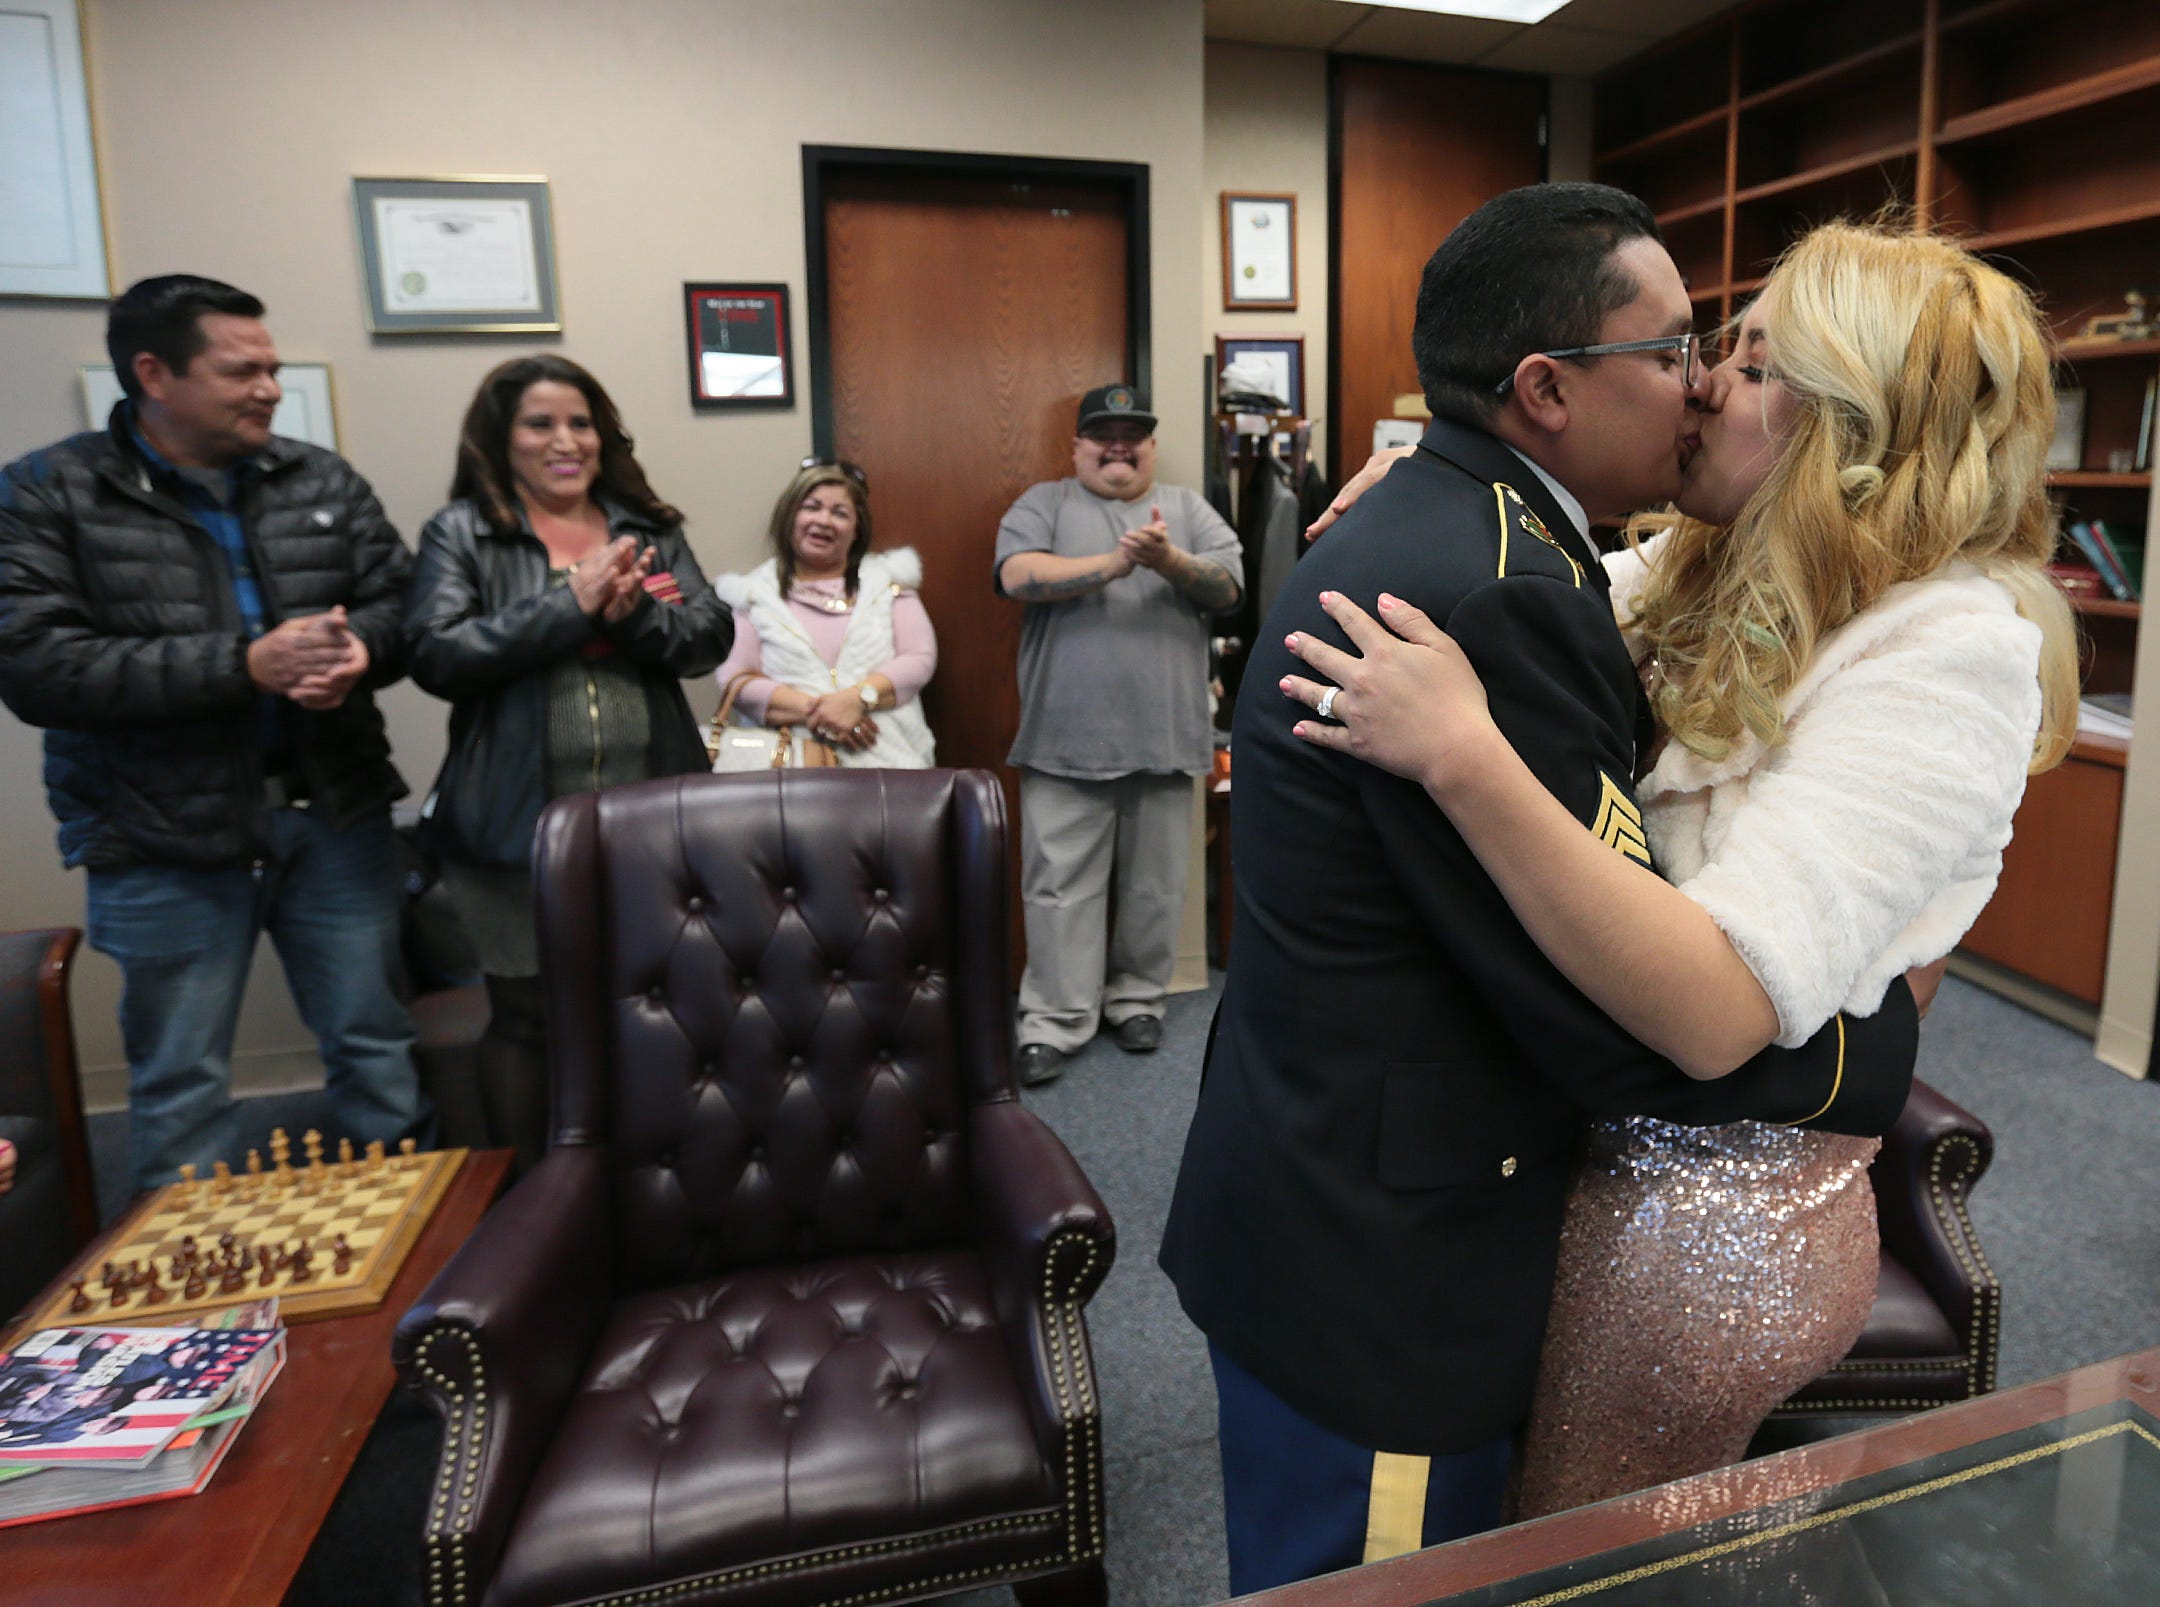 Randy Juarez and Carla Perez kiss Tuesday as they celebrate their marriage by Judge Patrick Garcia of the 384th District Court. Their family members applaud in the background.